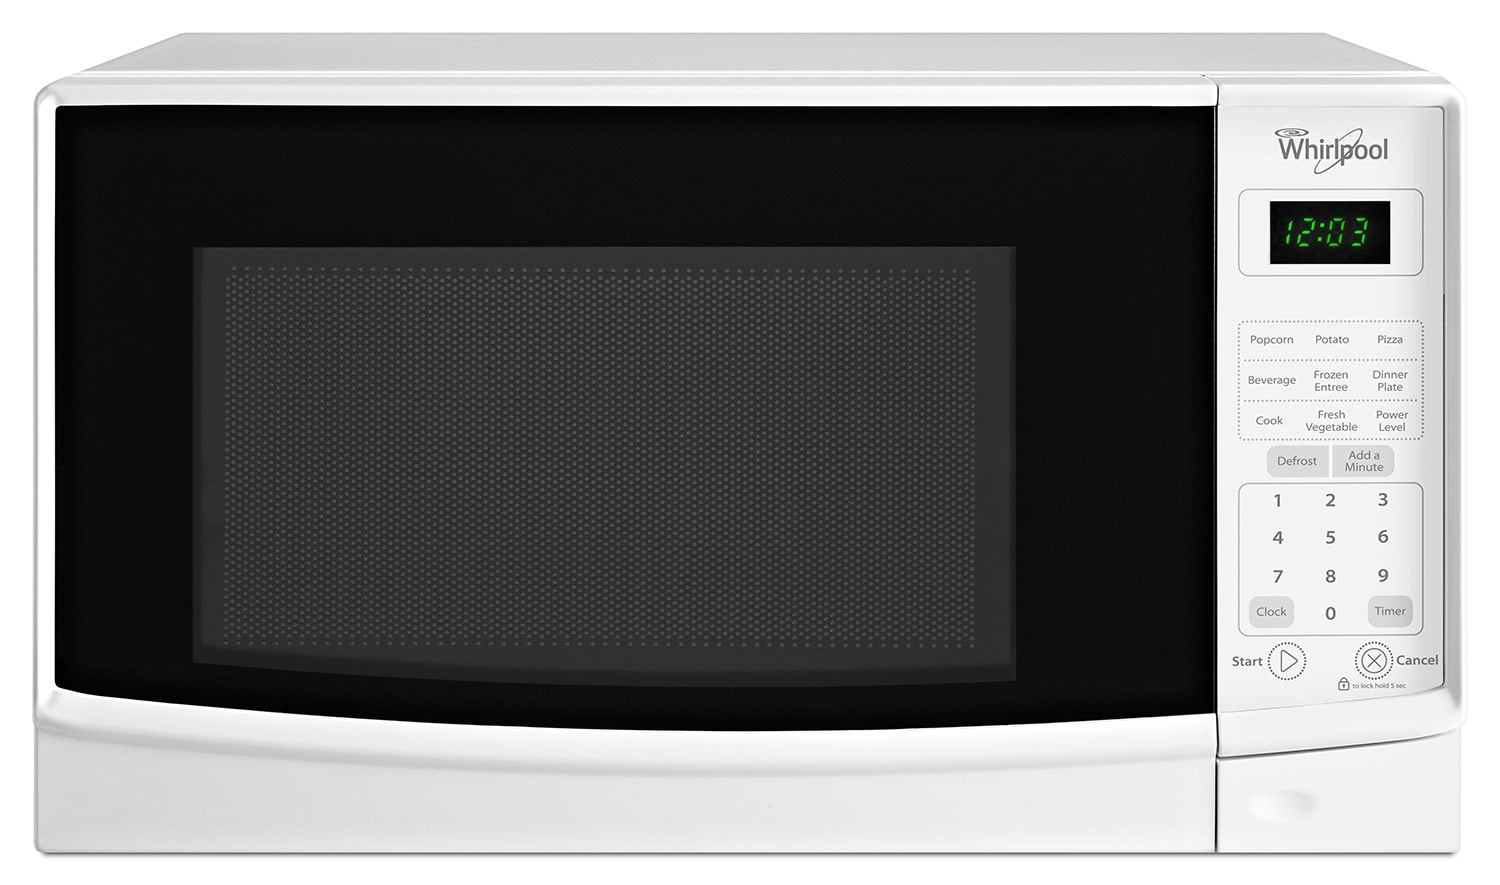 Cooking Products - Whirlpool White Microwave (0.7 Cu. Ft.) - WMC10007AW